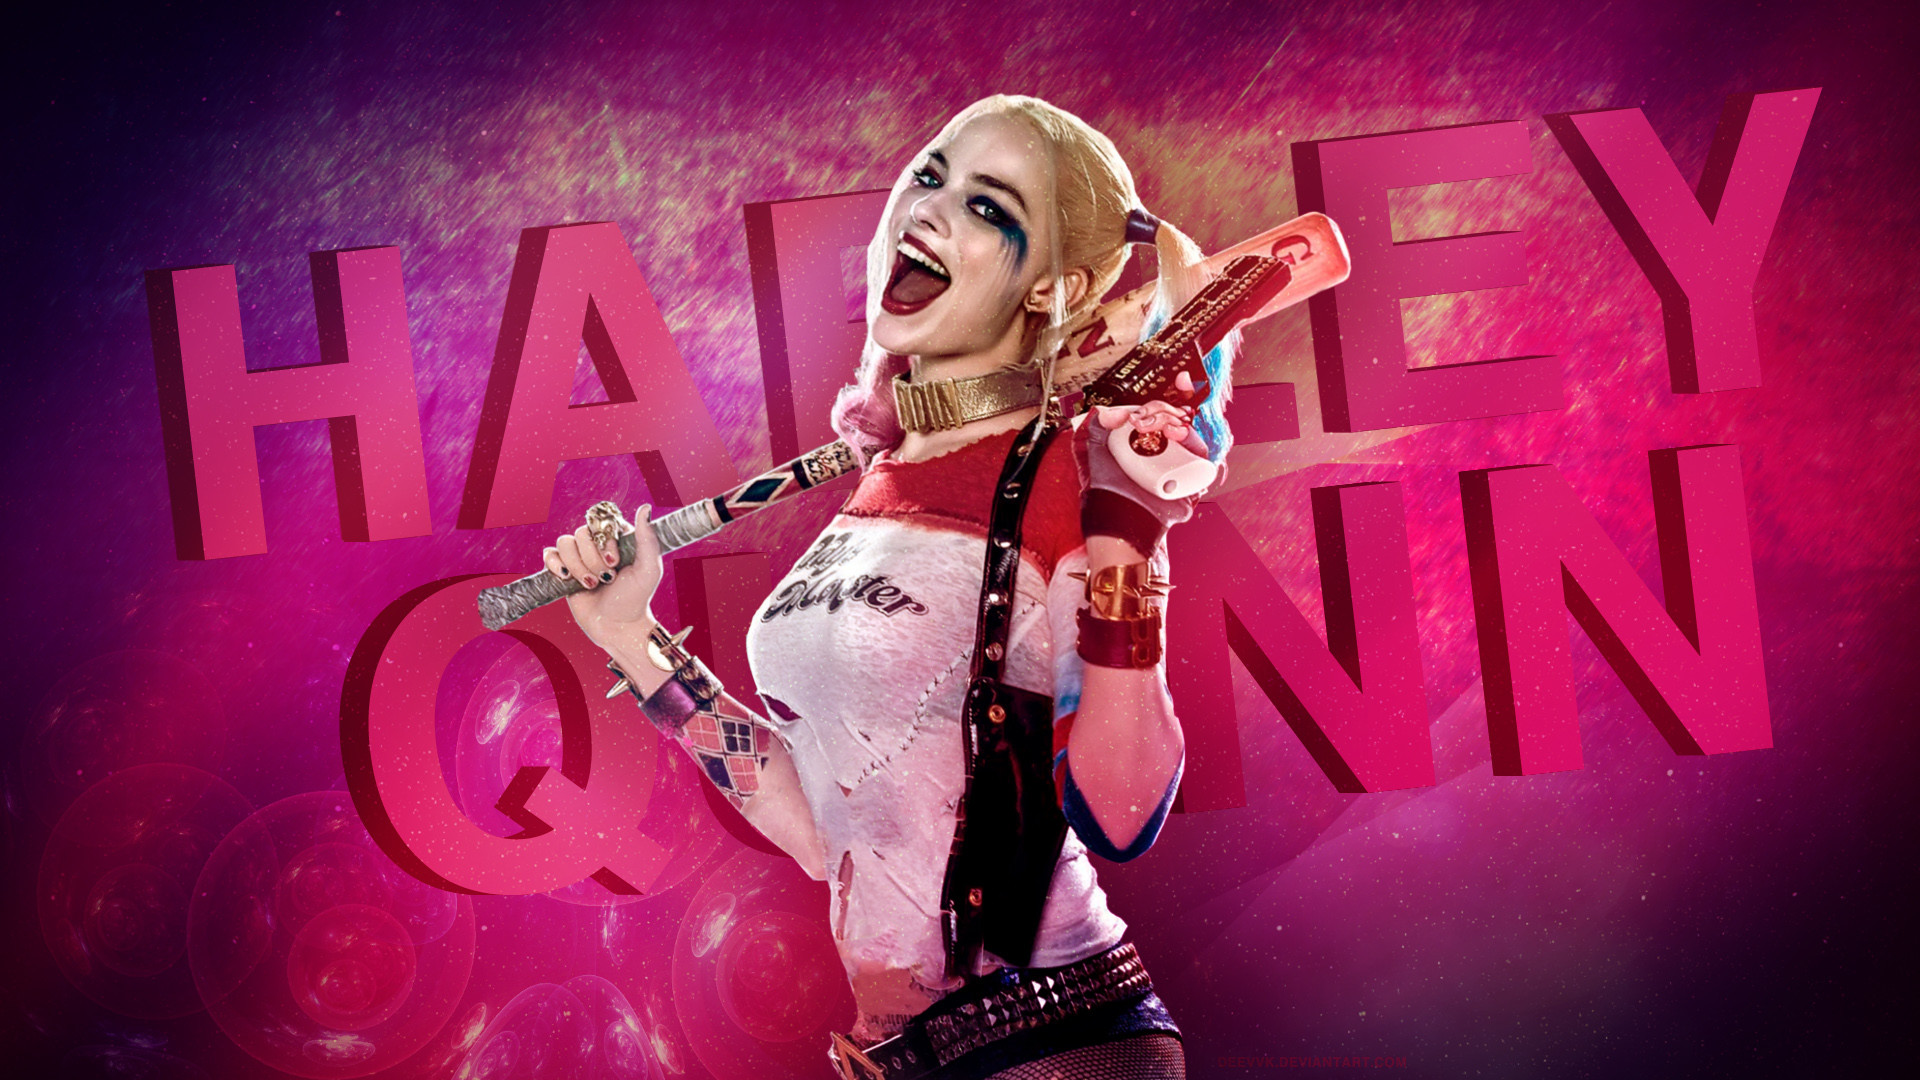 Harley Quinn 4k Hd Wallpapers: Harley Quinn Wallpapers (69+ Images